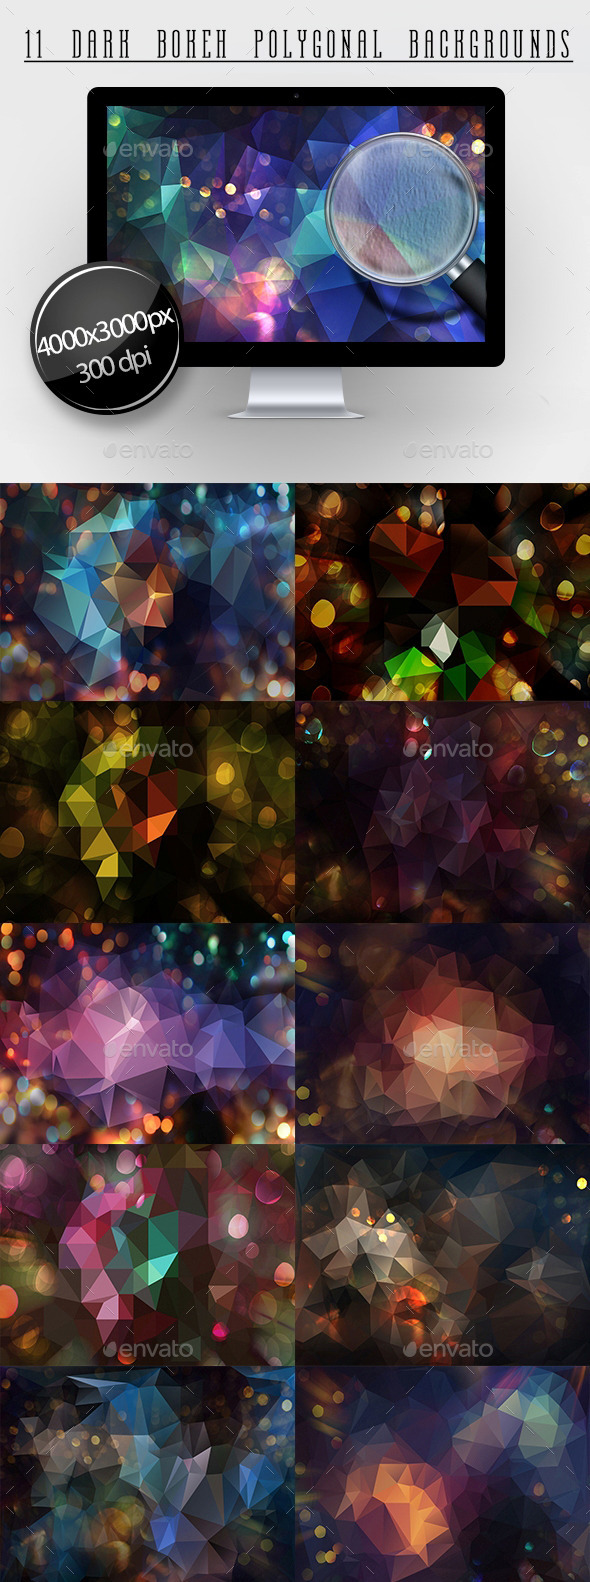 GraphicRiver 11 Dark Bokeh Polygonaln Backgrounds 11553704